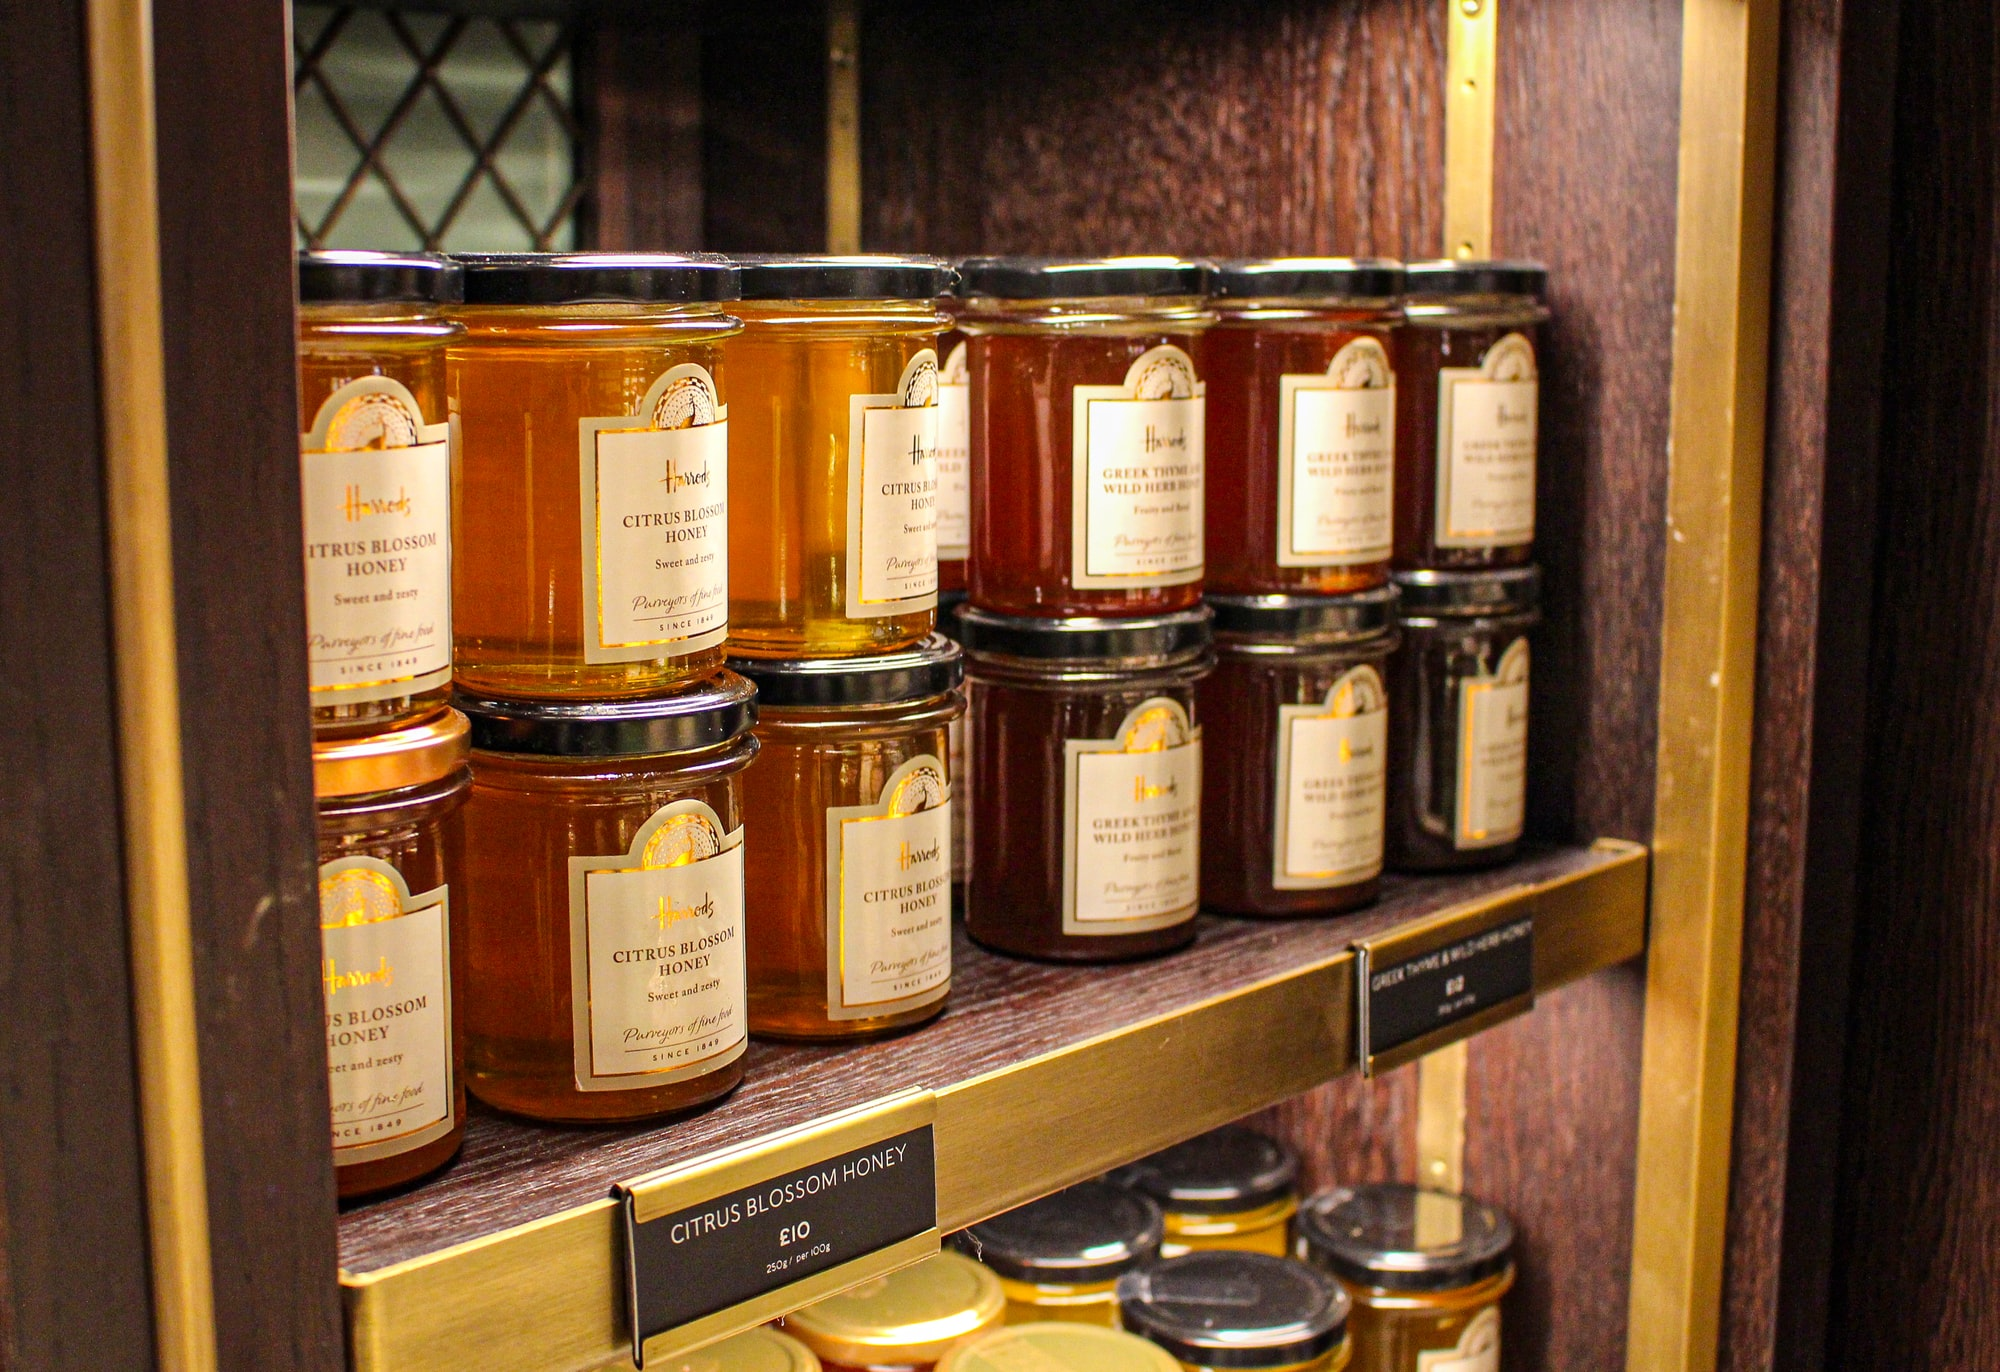 Honey, jams, preserves, marmalades in Harrods, Brompton Road, London, Great Britain: Citrus Blossom Honey, Greek Thyme Wild Herbs Honey, all in jars on wooden shelves.